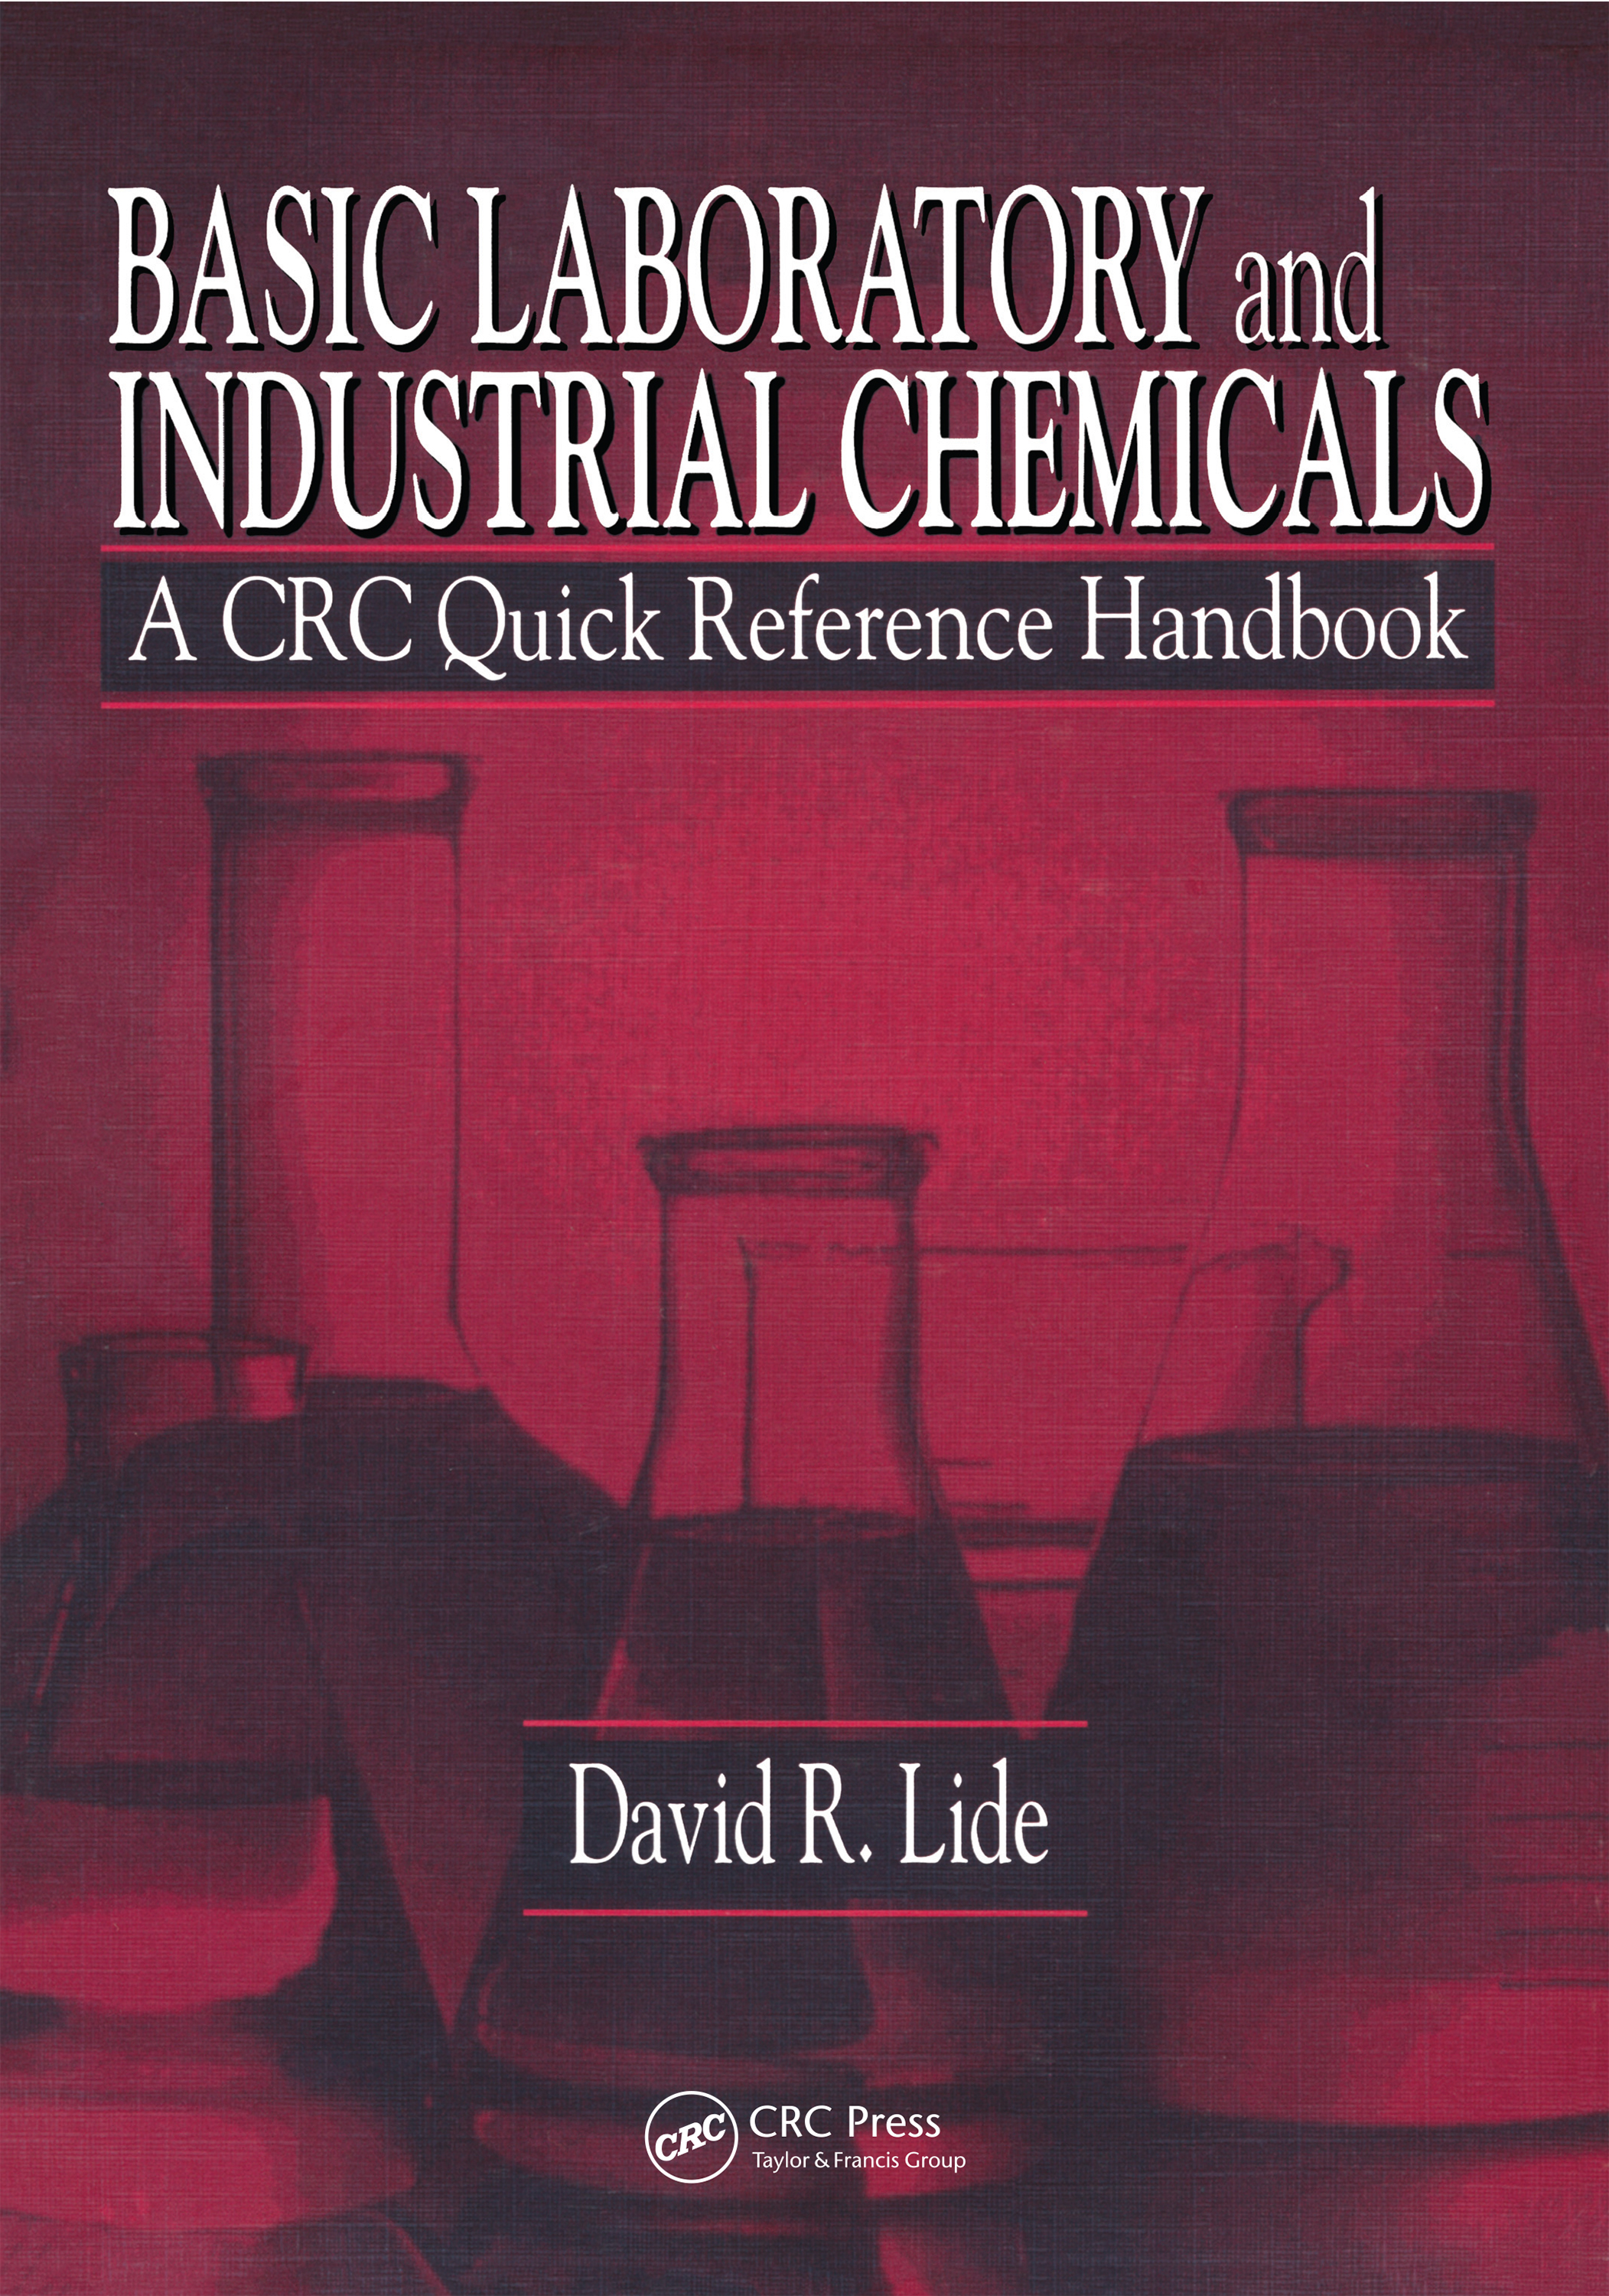 Basic Laboratory and Industrial Chemicals: A CRC Quick Reference Handbook, 1st Edition (Paperback) book cover